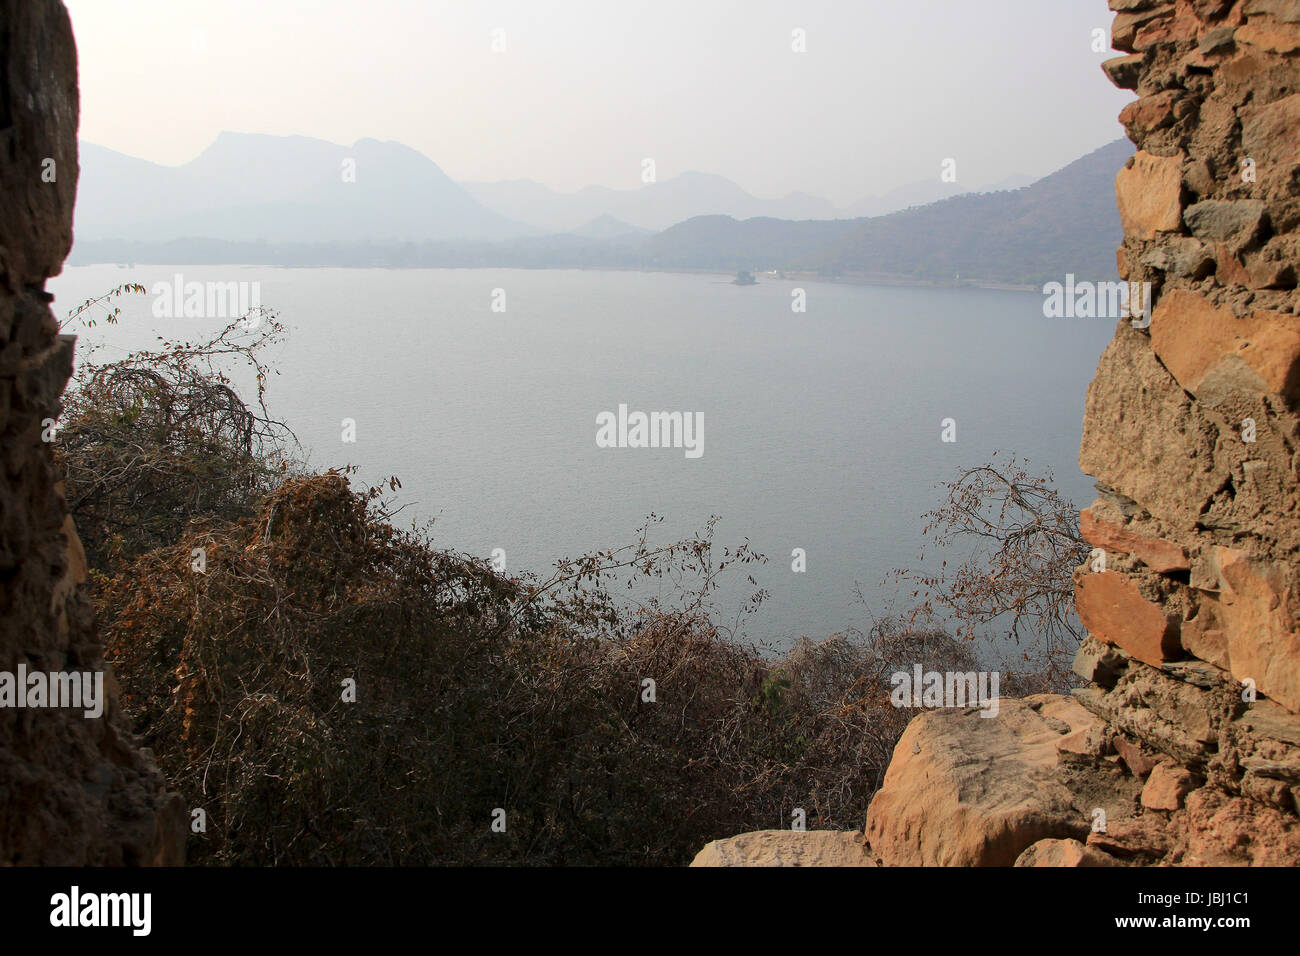 View of hills and Lake Fateh Sagar from Moti Magri Hill near Pratap Smarak in Udaipur, Gujarat, India, Asia - Stock Image